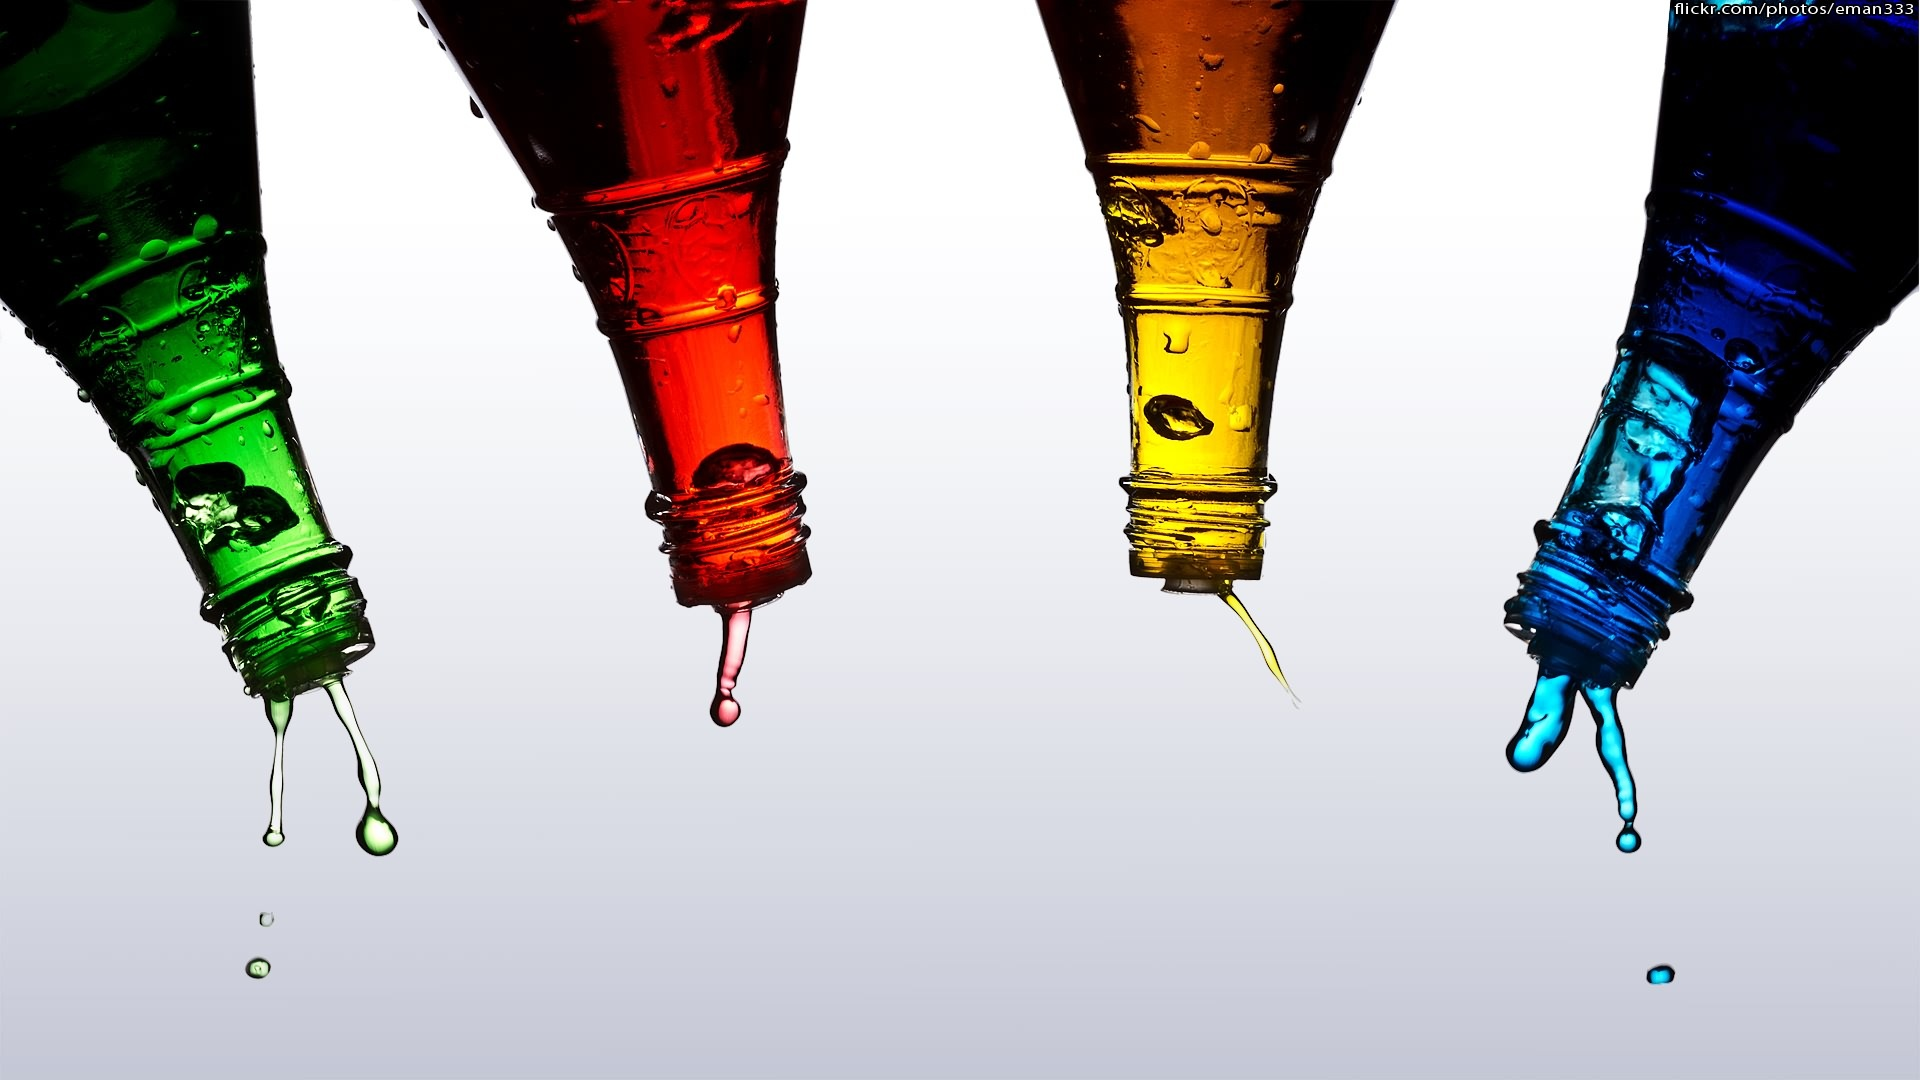 Bottle computer wallpapers desktop backgrounds for How do i make a wall with colored bottles